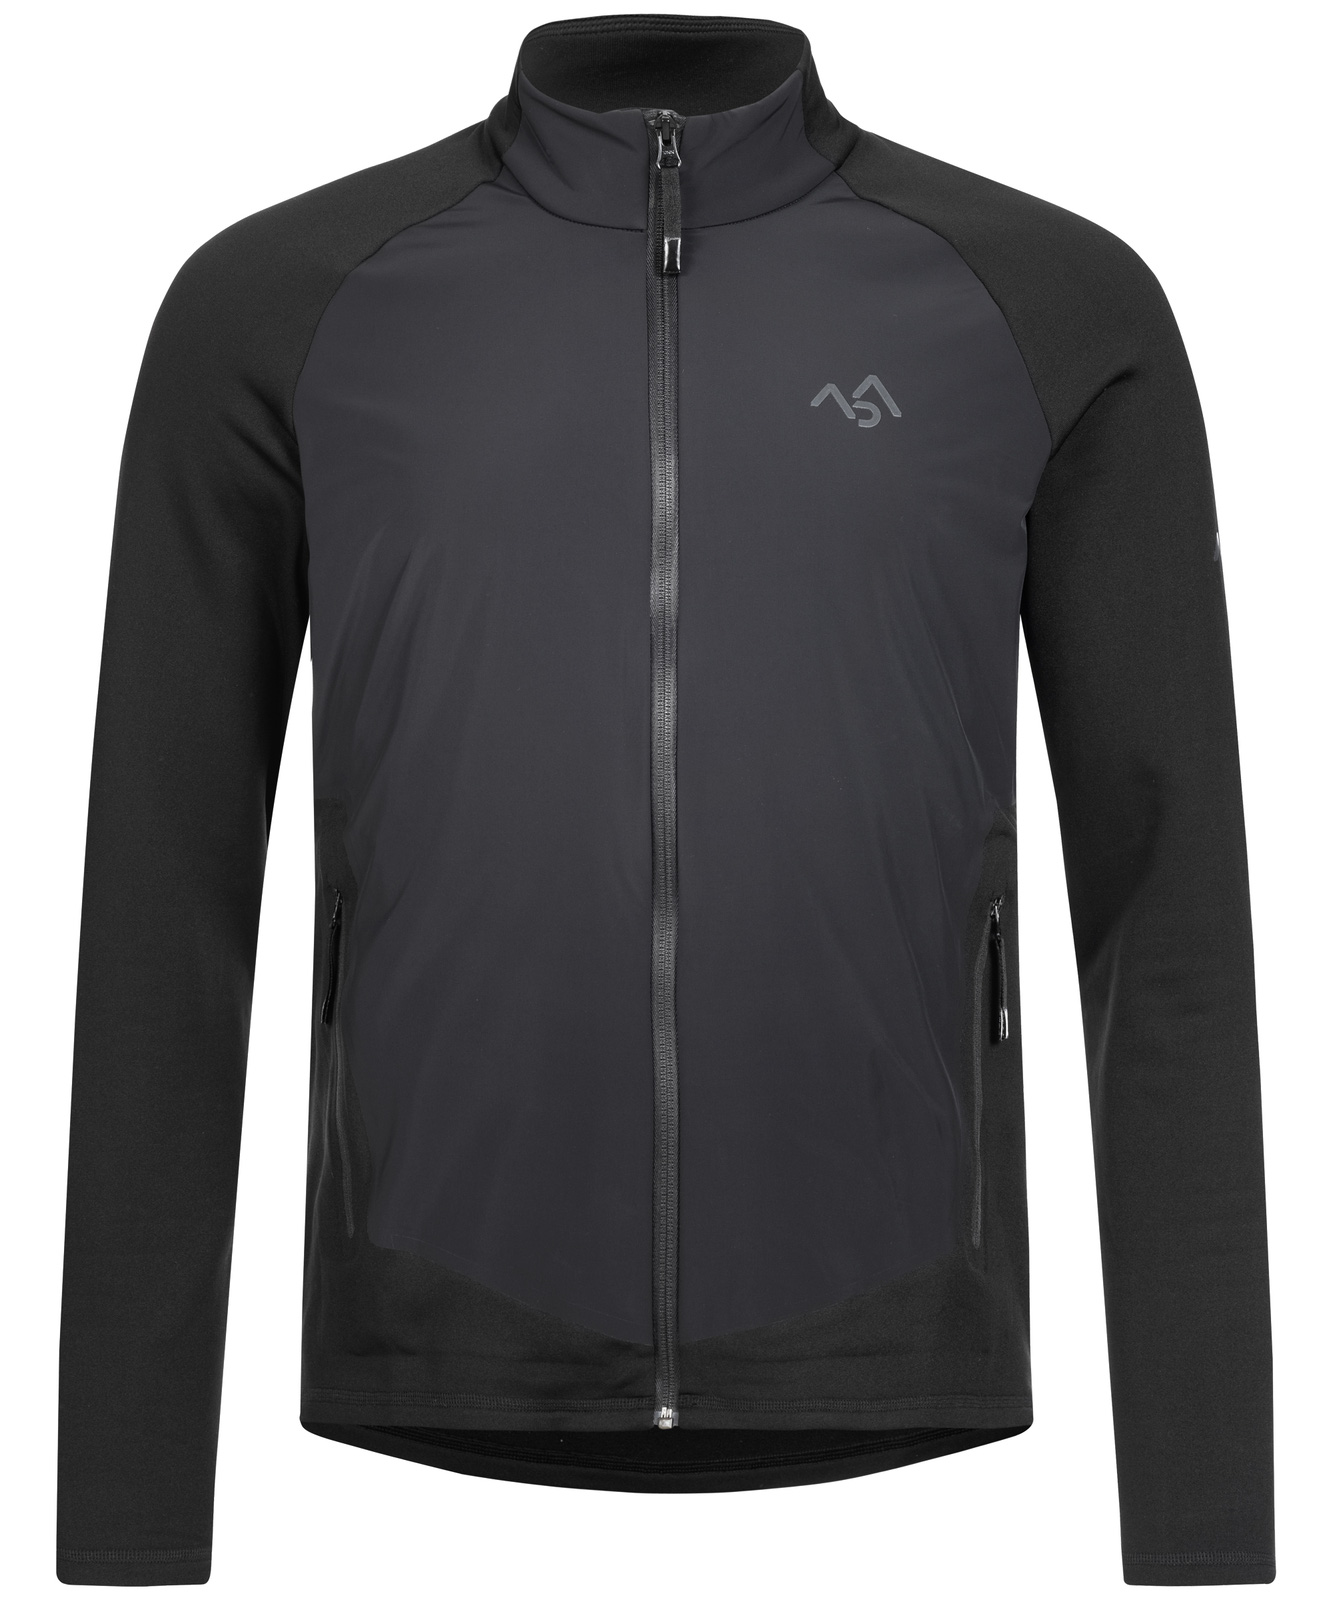 MX5 Fleece Jacket